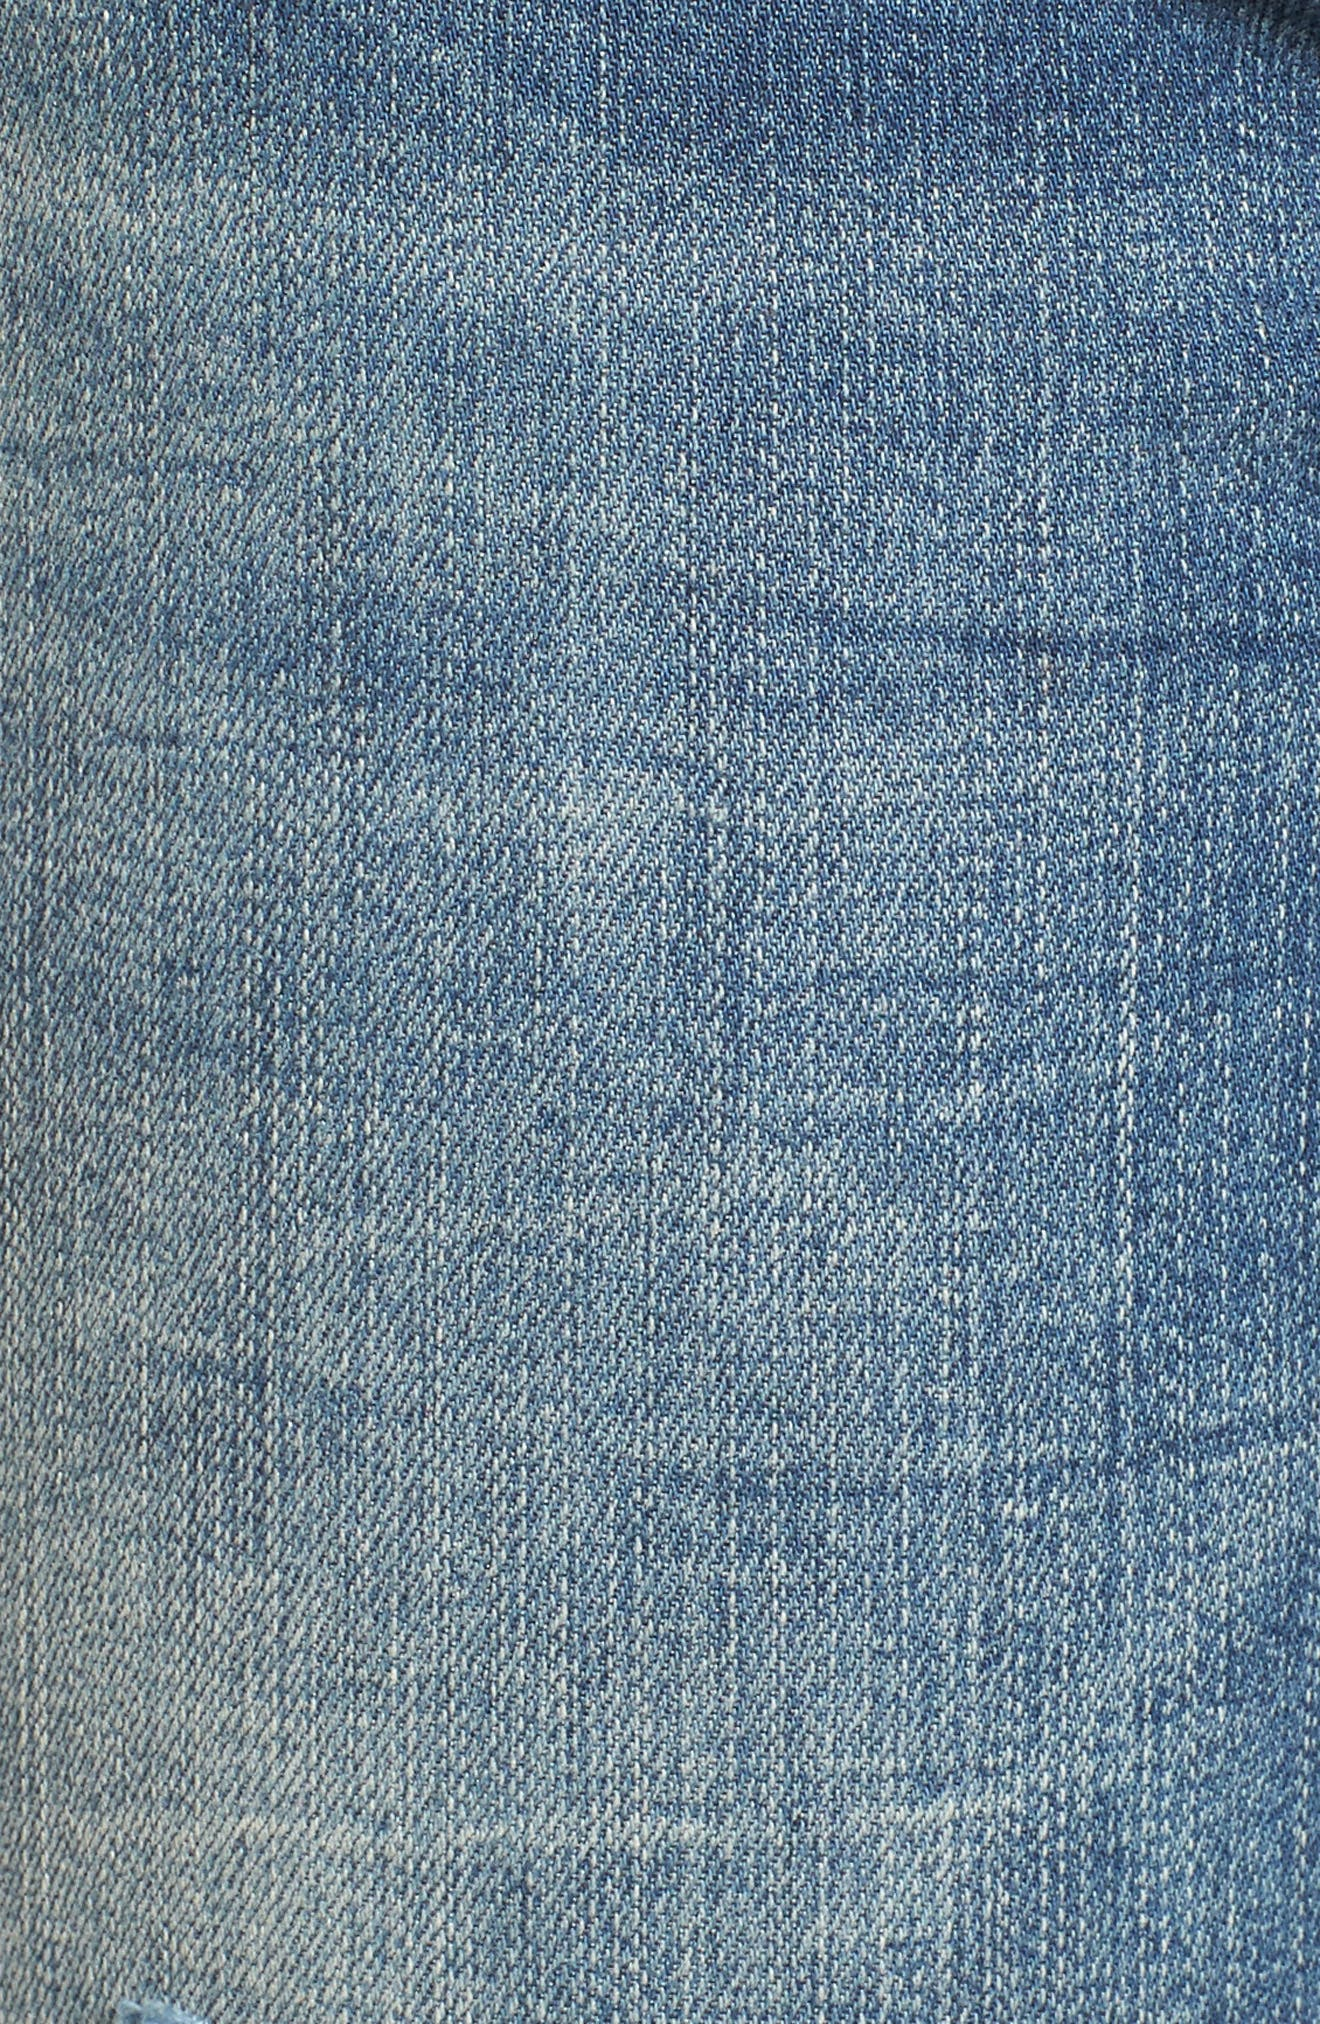 Distressed High Waist Skinny Jeans,                             Alternate thumbnail 6, color,                             Shot Not